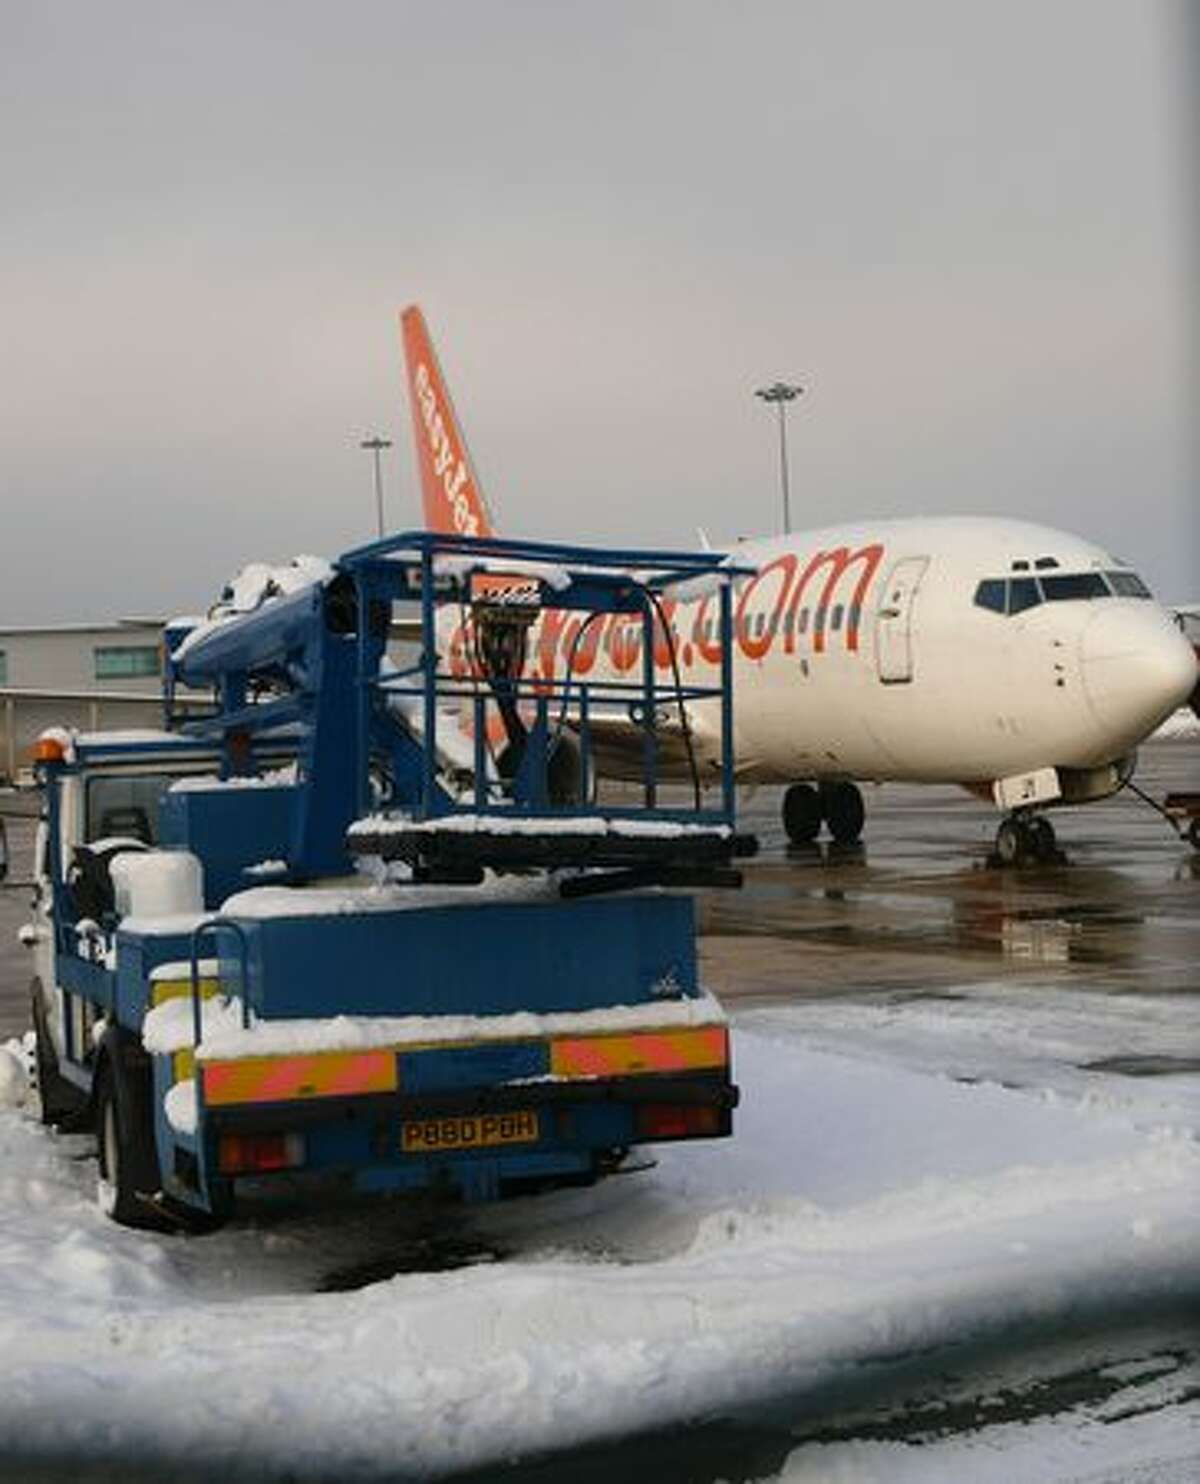 An easyJet aircraft is parked near a maintenance truck at Luton airport, north of London, on Dec. 22, 2009. Budget airline easyJet canceled more than 150 flights Tuesday due to severe weather conditions, in a fresh blow to European passengers hoping to travel for the Christmas holidays. British Airways and Irish low-budget carrier Ryanair also warned of delays and cancellations due to the heavy snow and freezing temperatures, which have already caused chaos on the roads and suspended Eurostar train services.